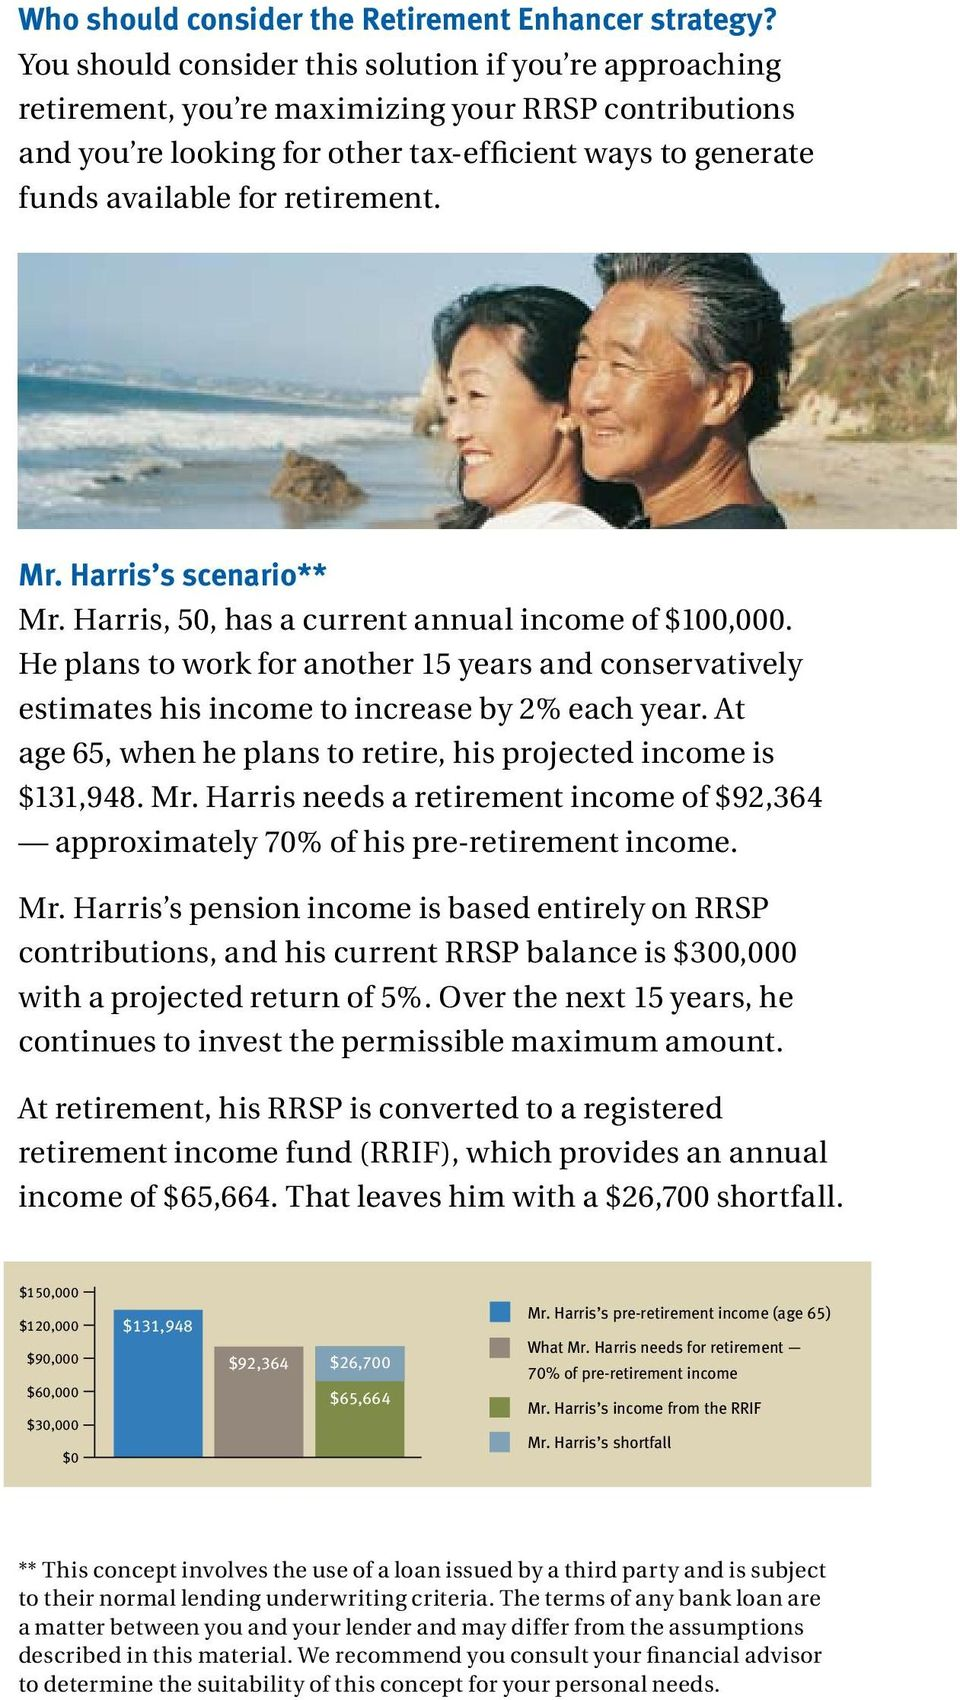 retirement. Mr. Harris s scenario** Mr. Harris, 50, has a current annual income of $100,000. He plans to work for another 15 years and conservatively estimates his income to increase by 2% each year.